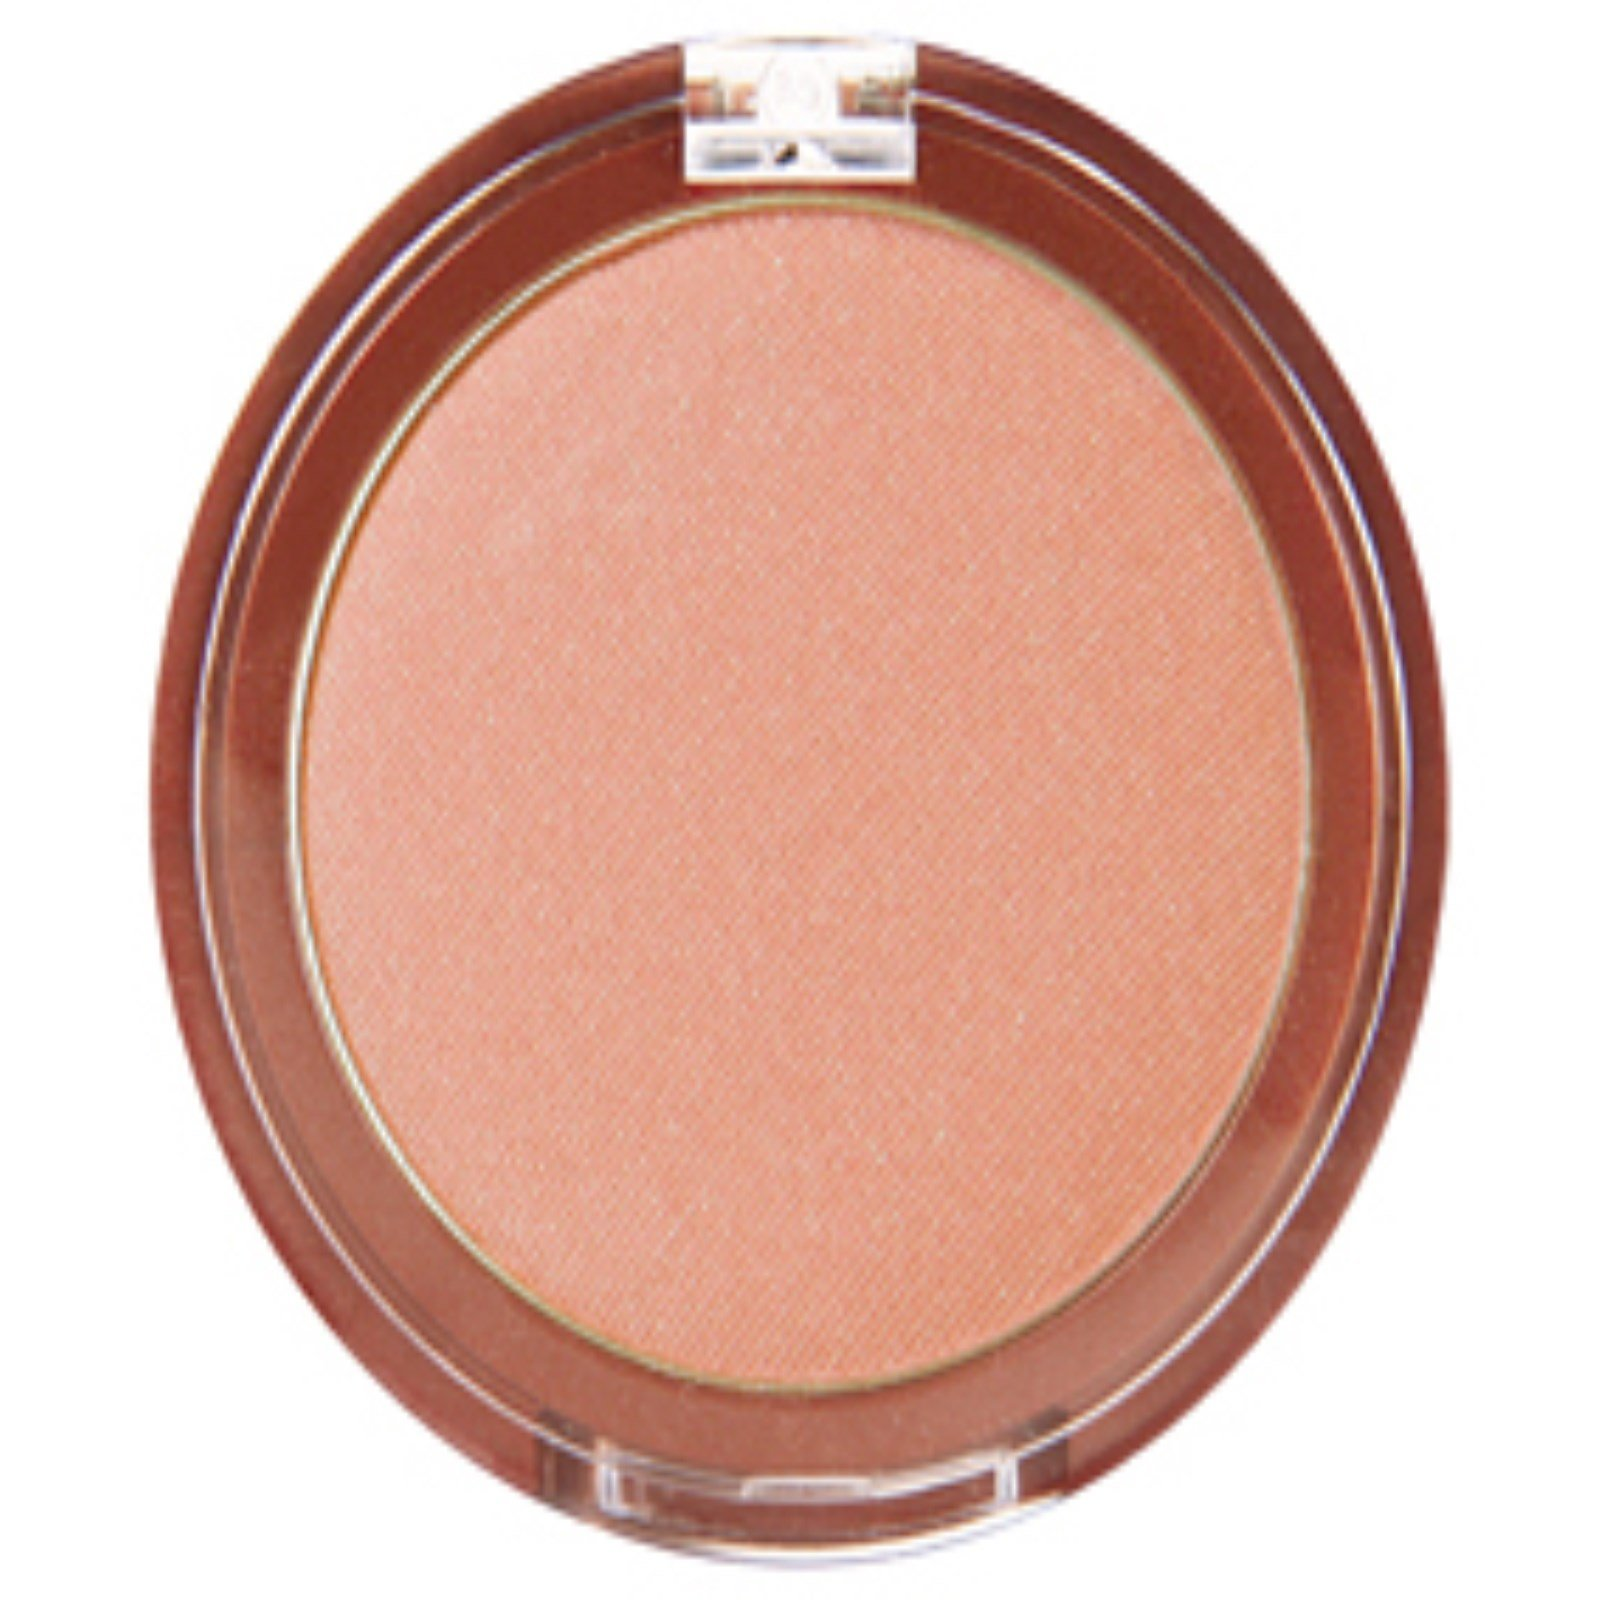 Mineral Fusion, Blush, Pale, 0.10 oz (3.0 g) by Mineral Fusion (Image #1)